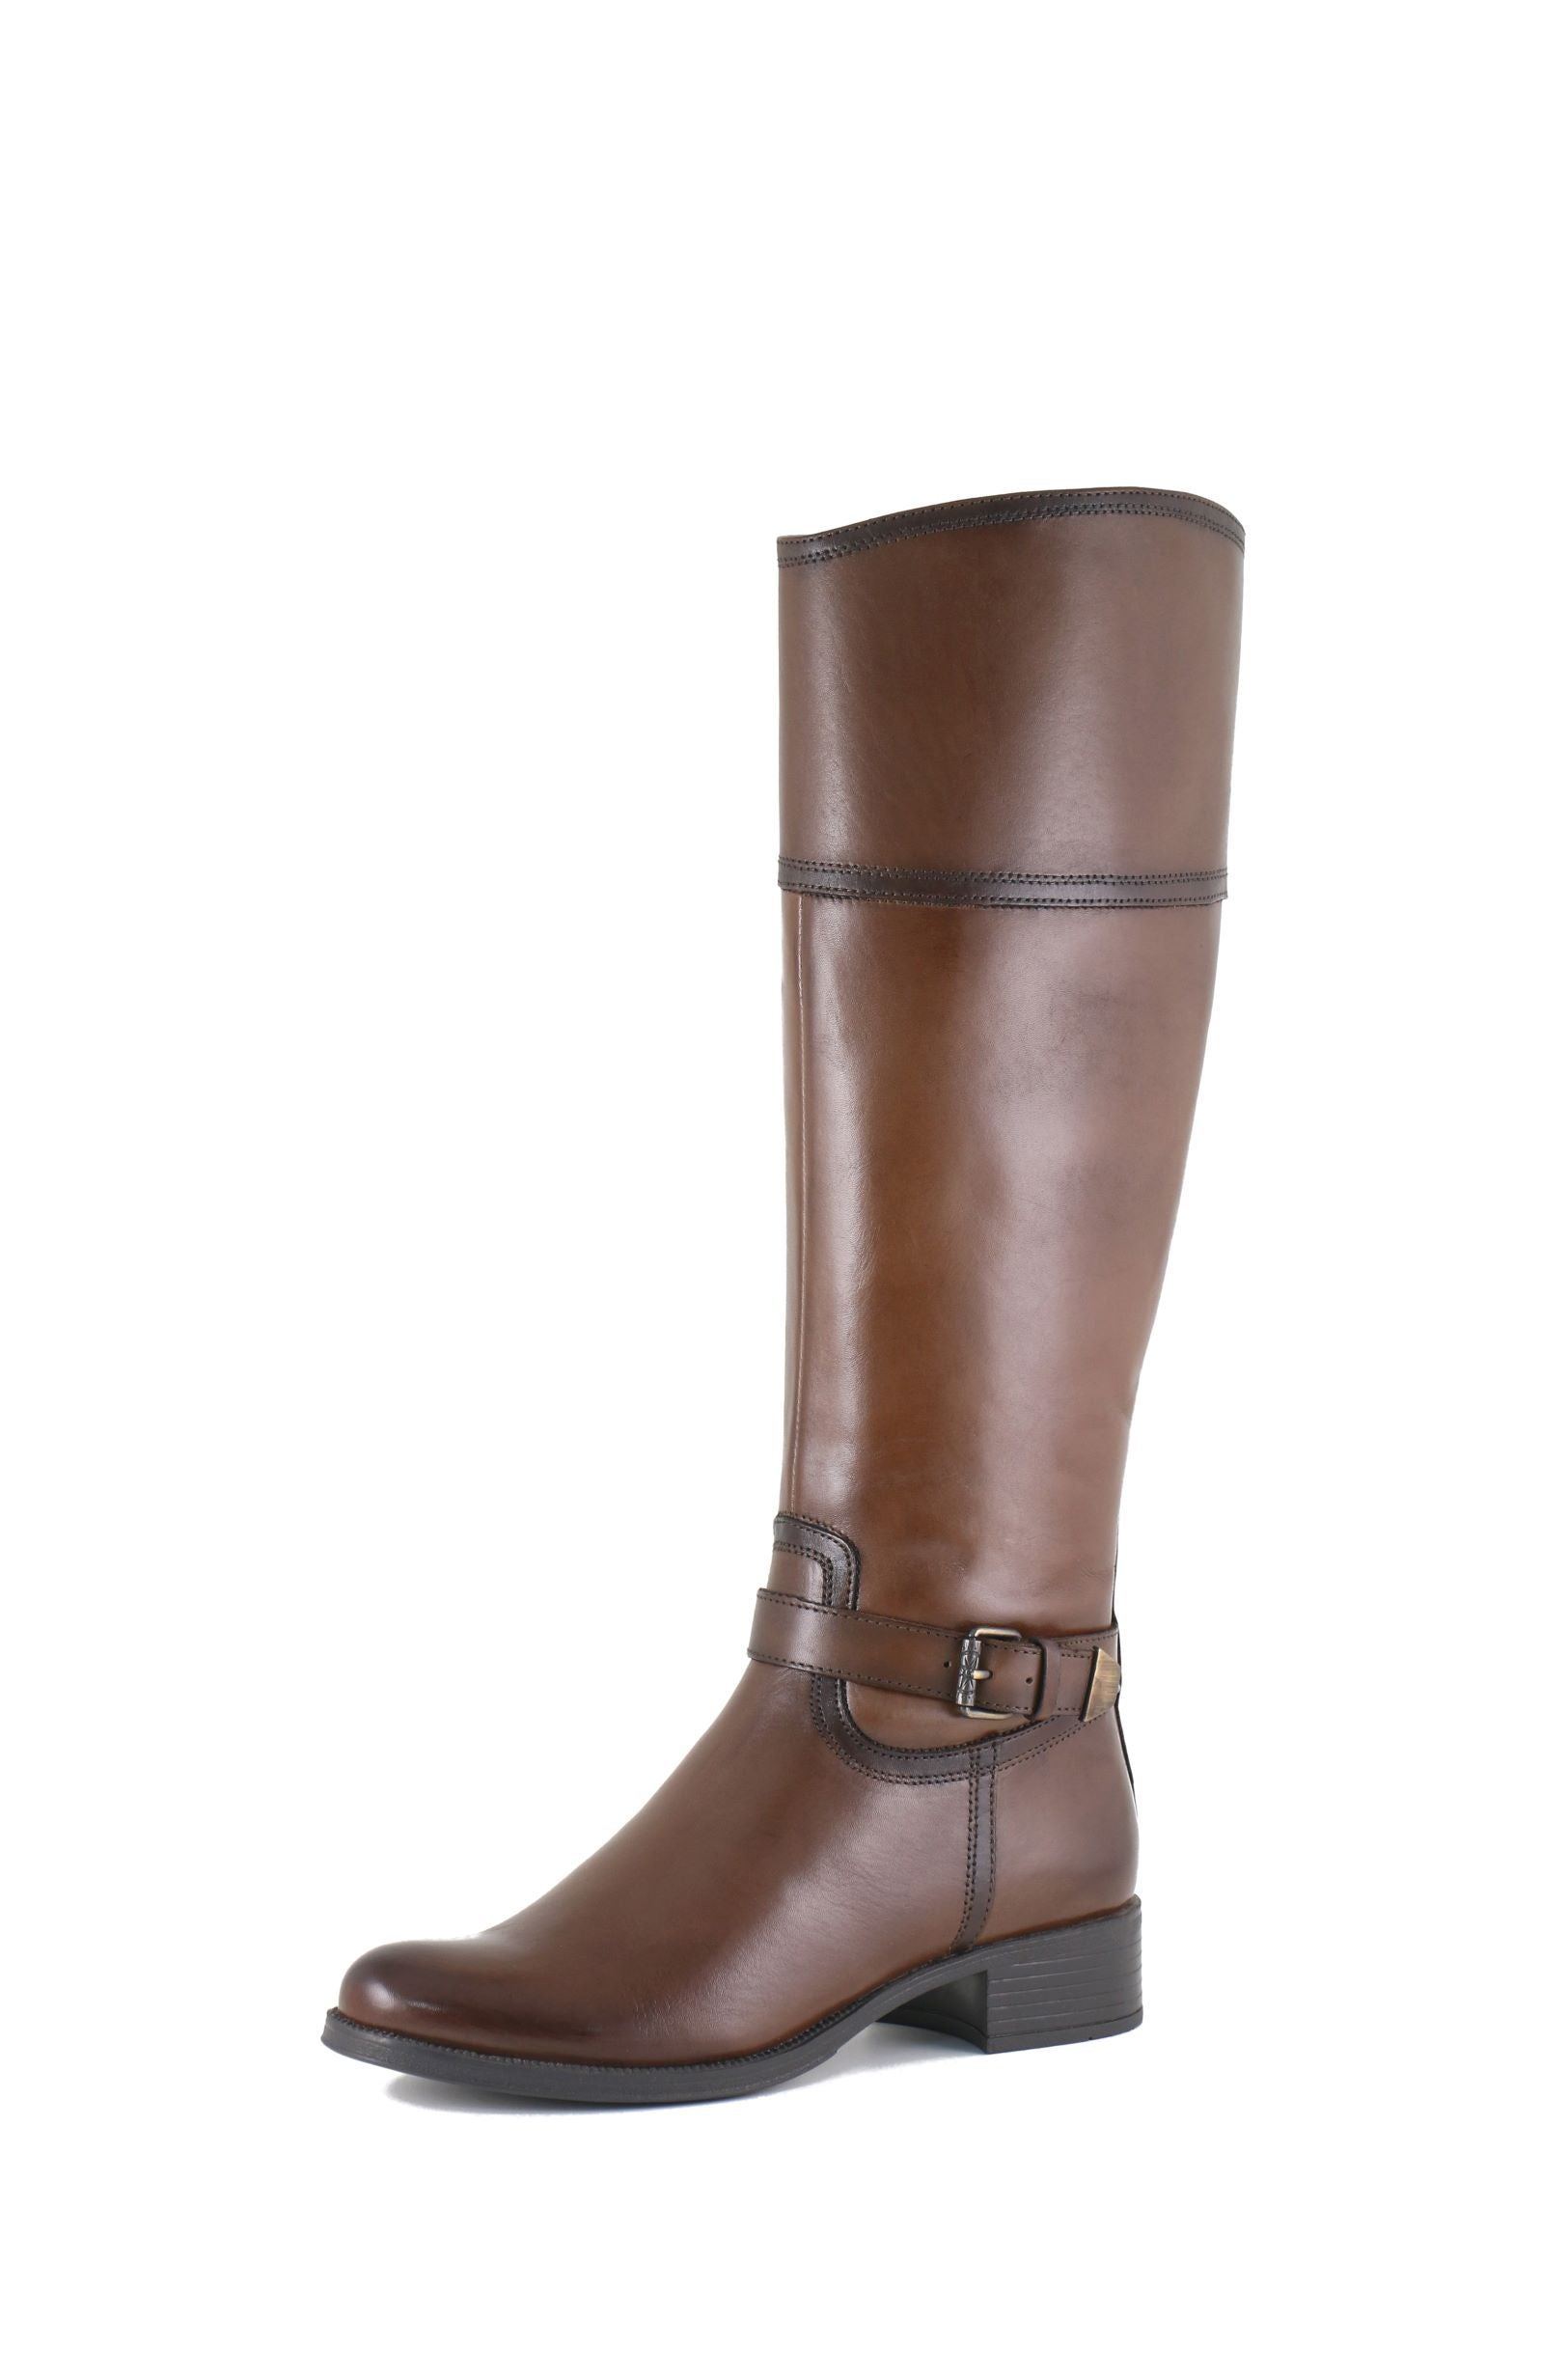 'Bussola' Siena Sara - Women's Tall Boot - Vachetta Luggage